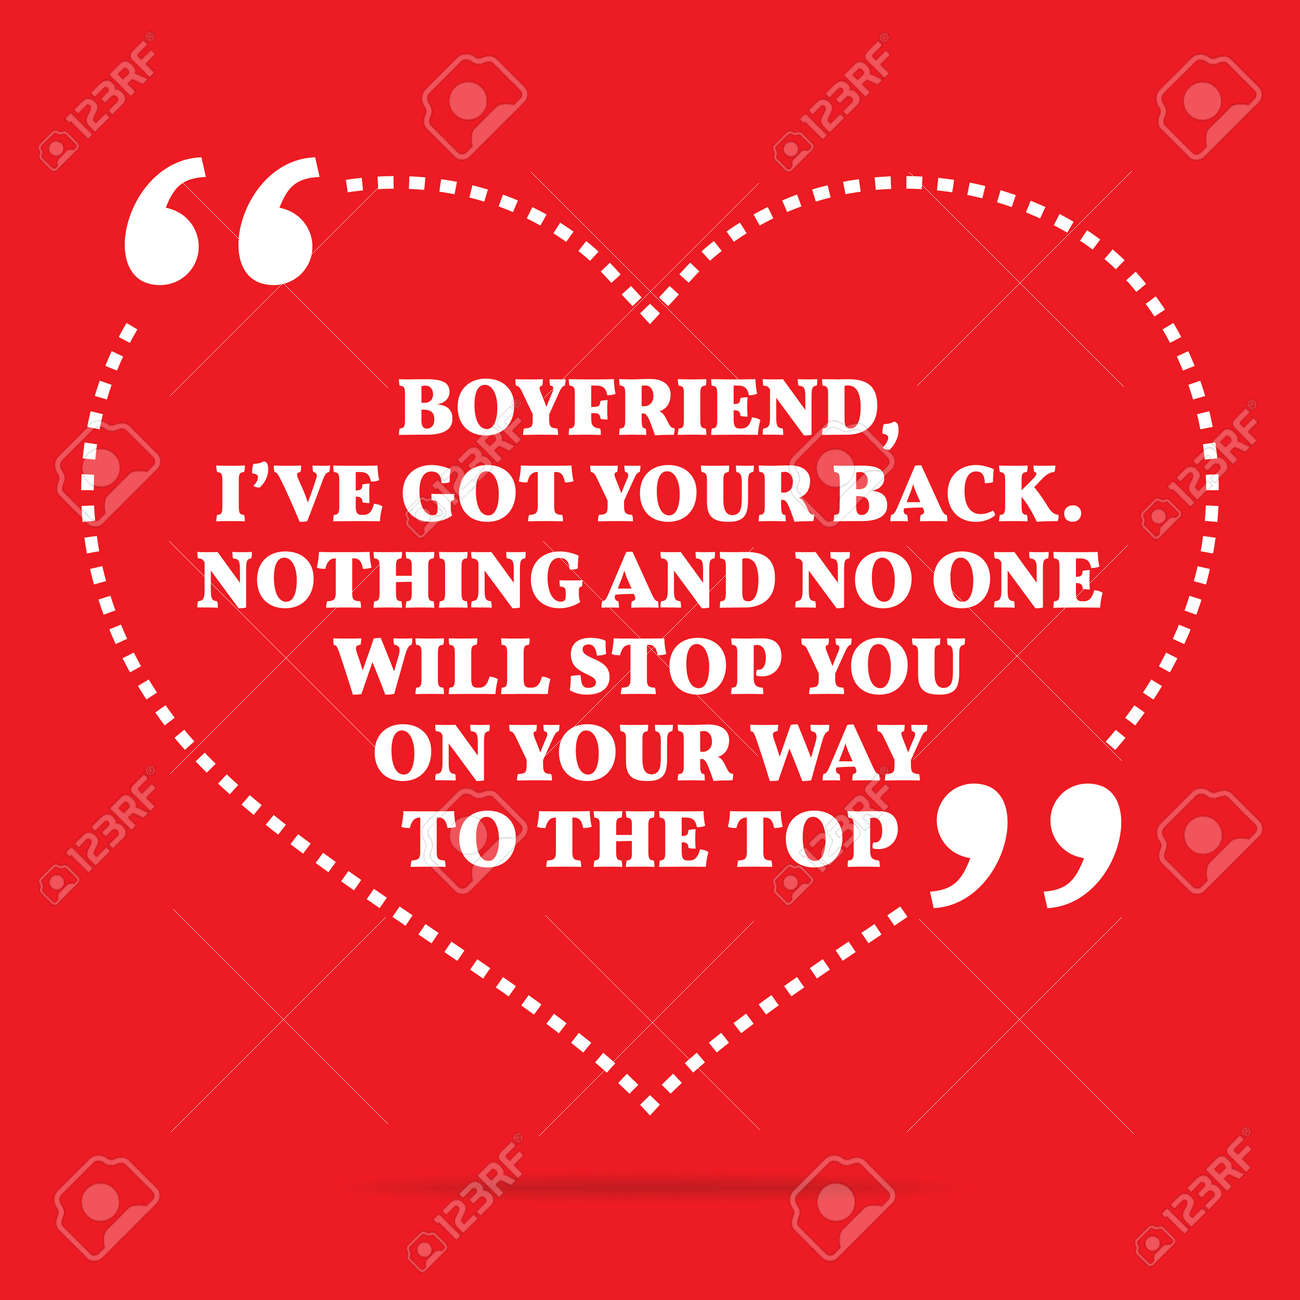 Inspirational Love Quote Boyfriend I Ve Got Your Back Nothing Royalty Free Cliparts Vectors And Stock Illustration Image 51266374